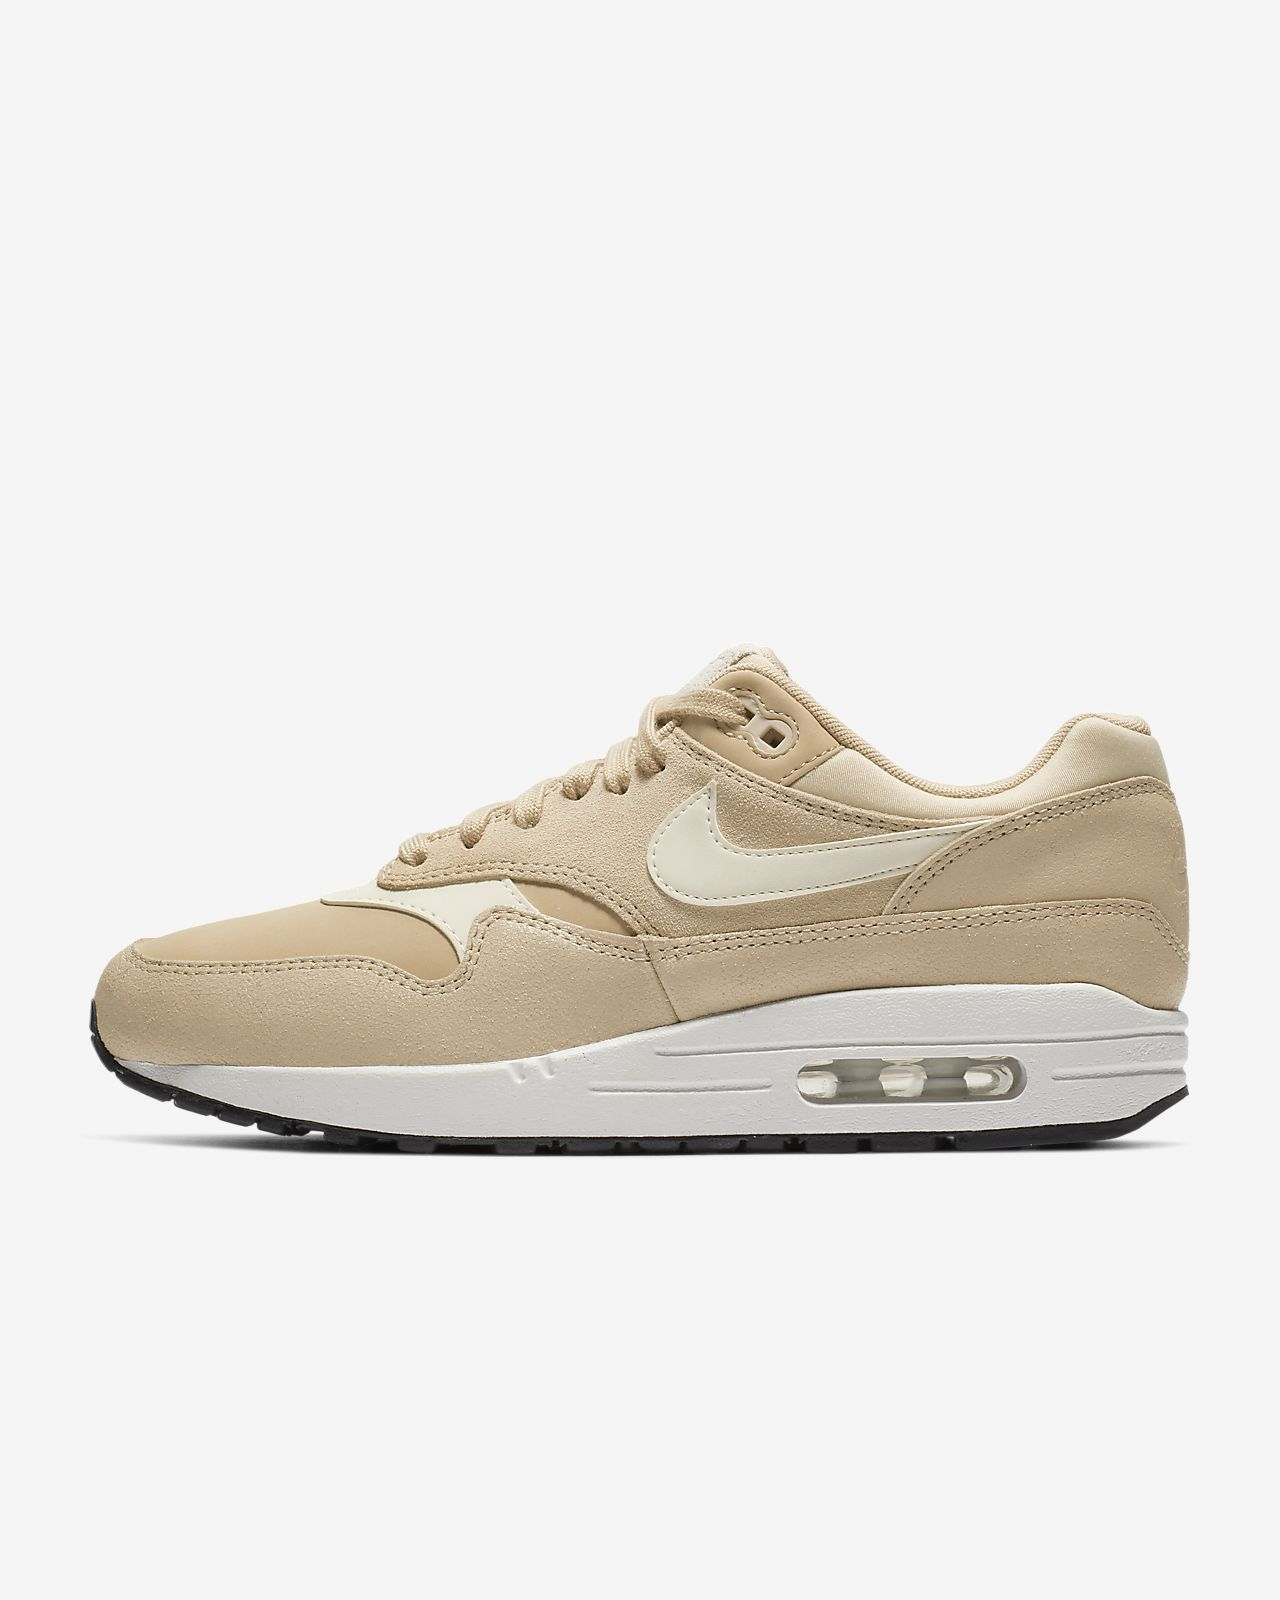 half off 53d2b 3be9b ... Nike Air Max 1 Premium Women s Shoe